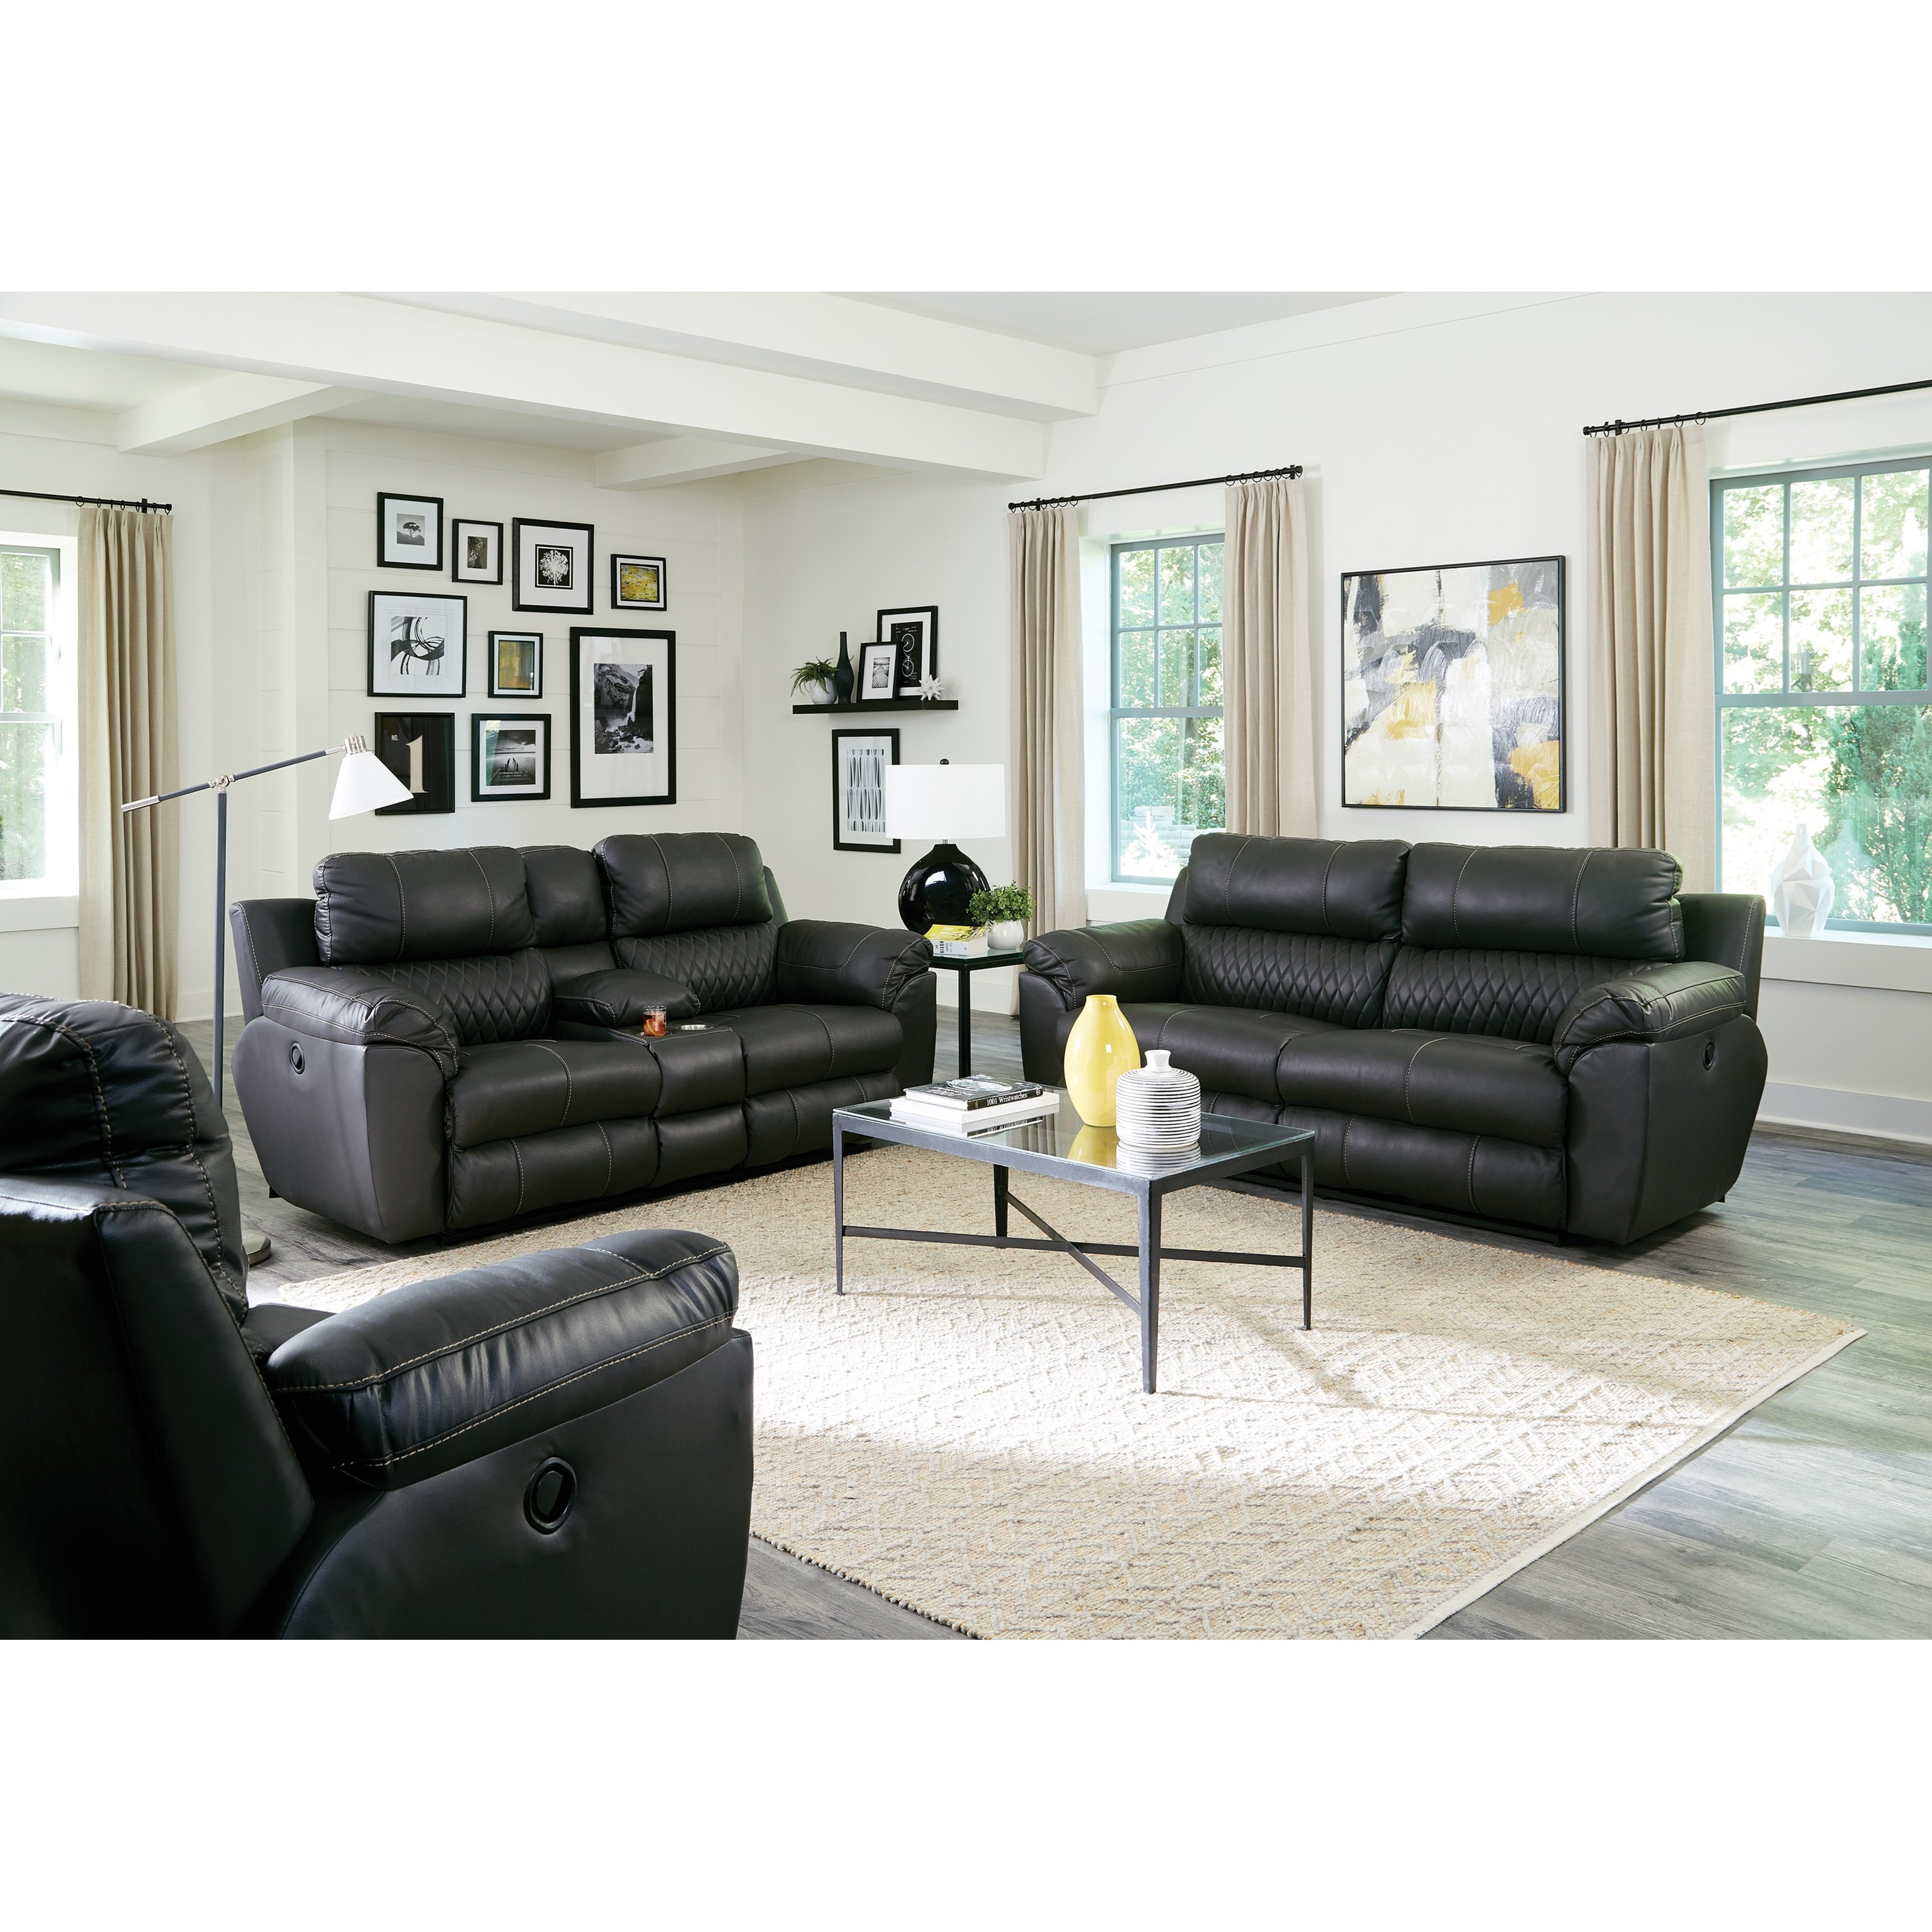 Sorrento Power Reclining Living Room Group by Catnapper at Standard Furniture